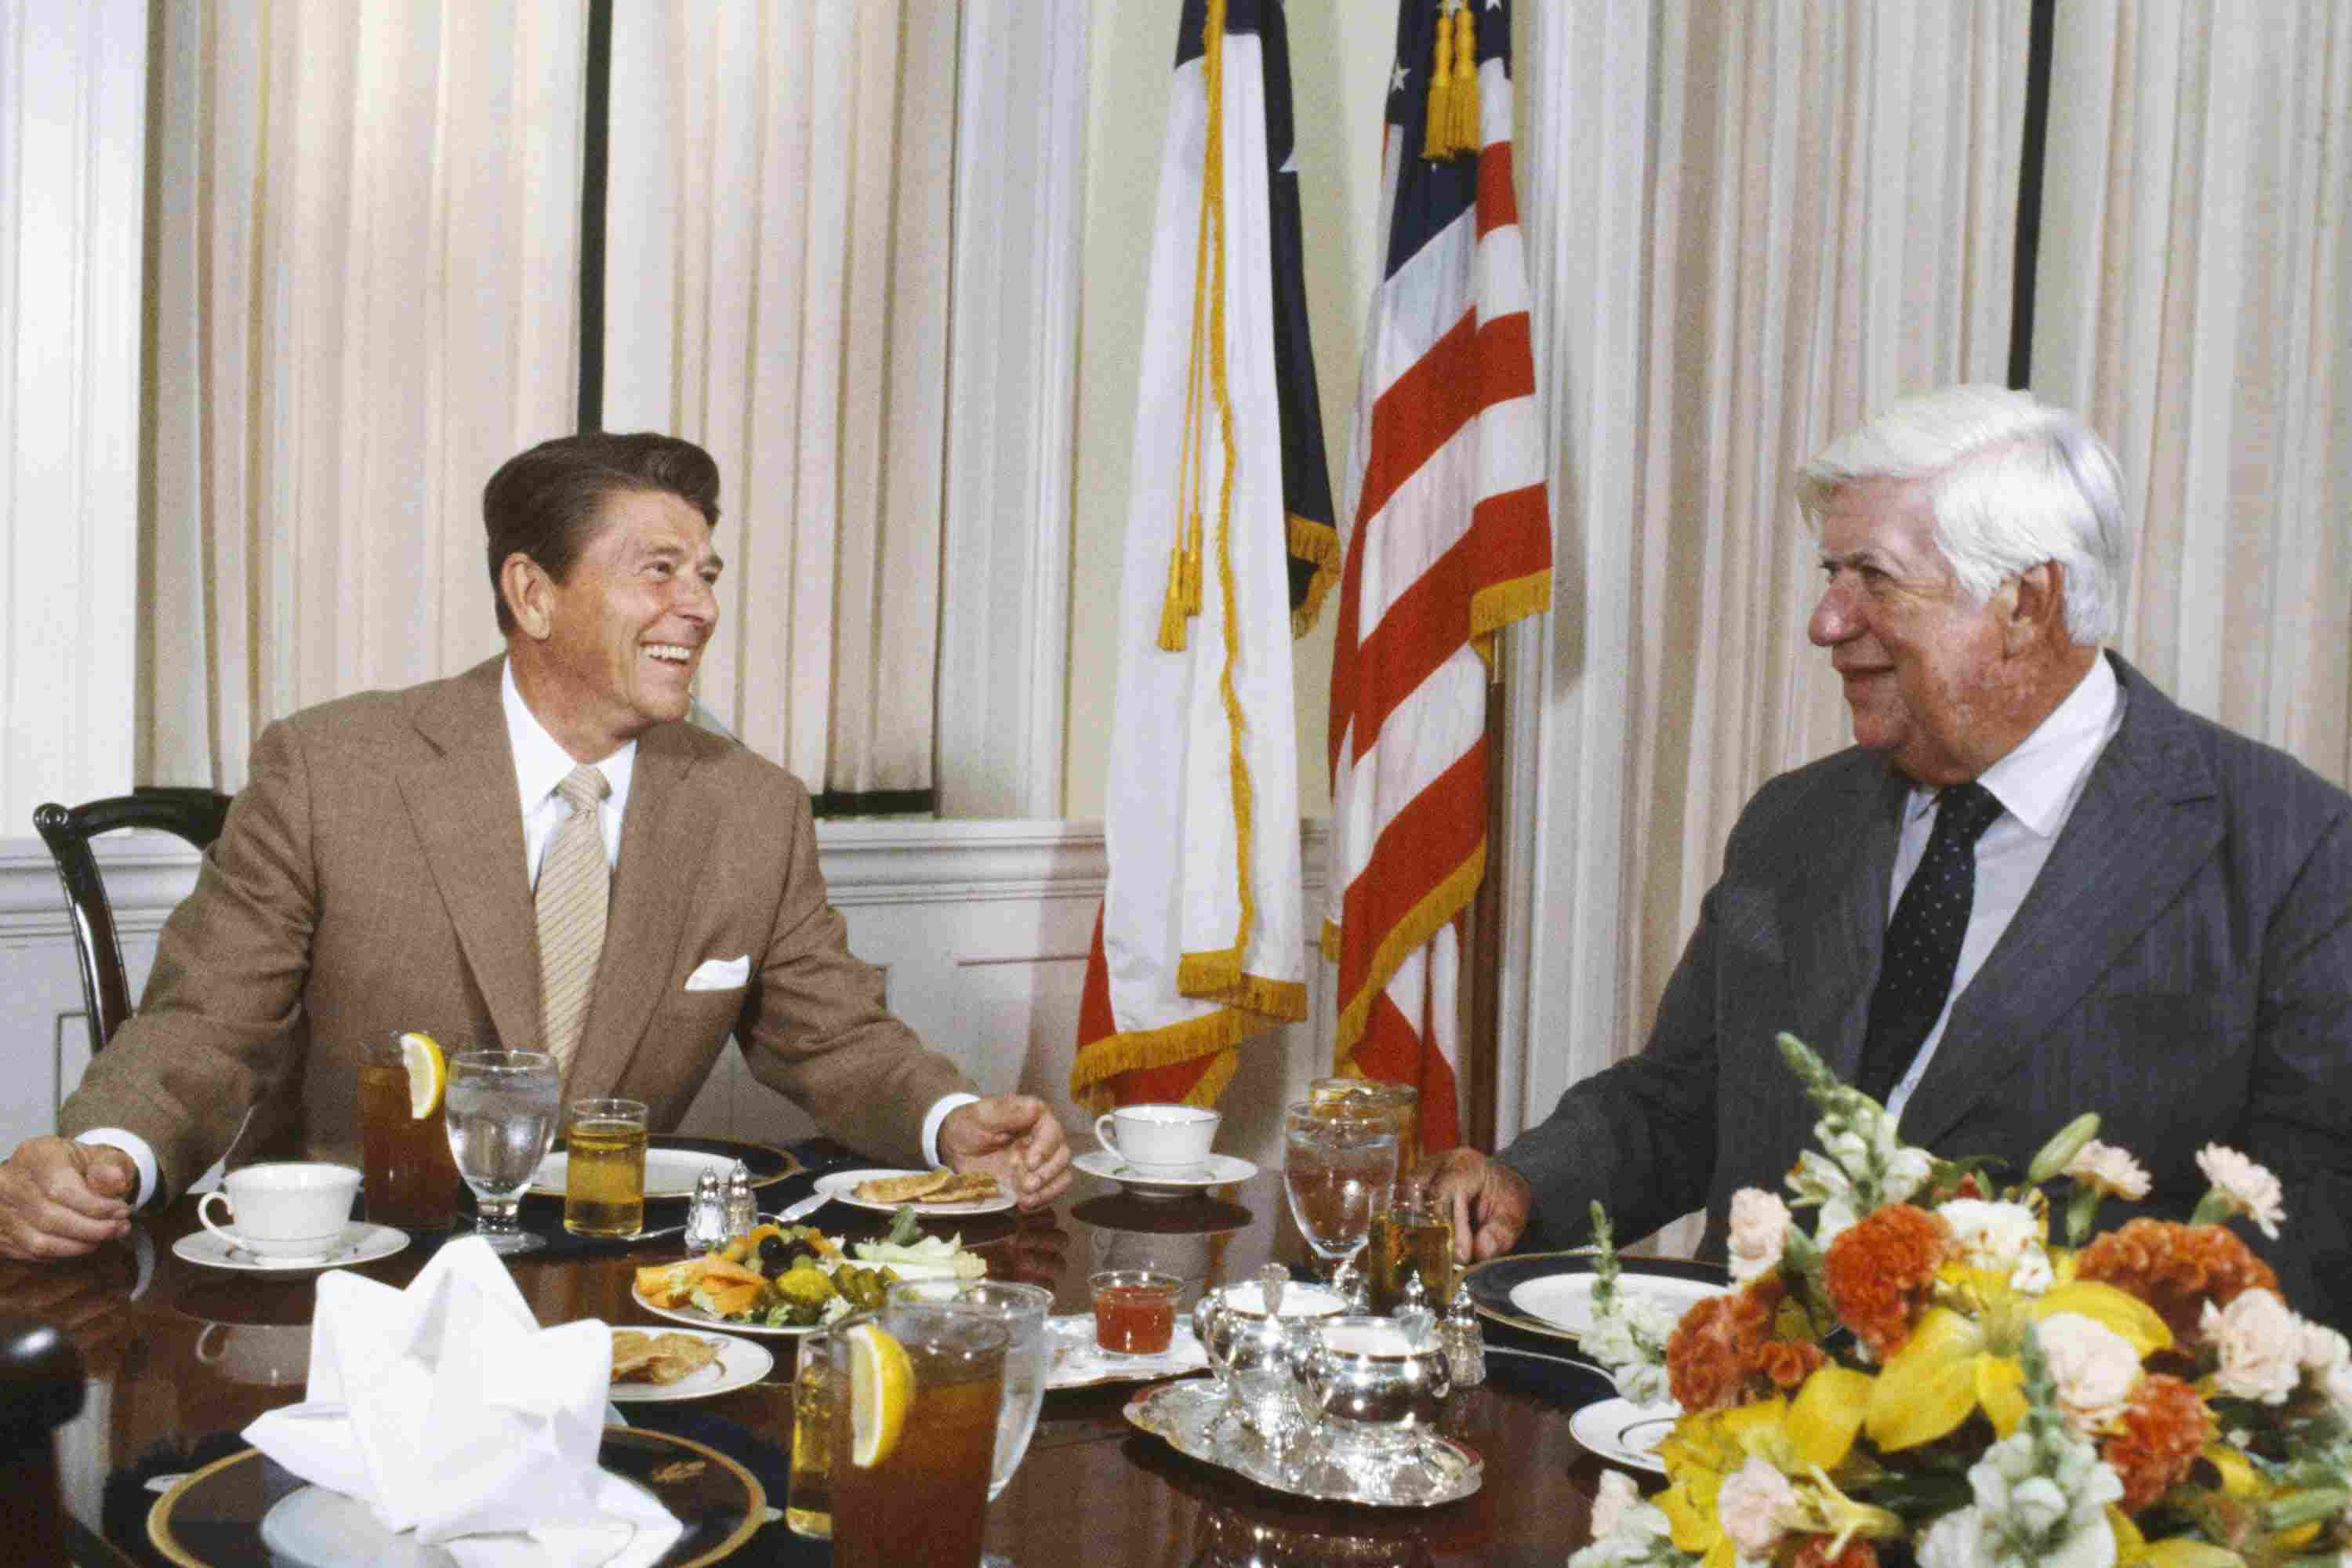 photo of Ronald Reagan and Tip O'Neill